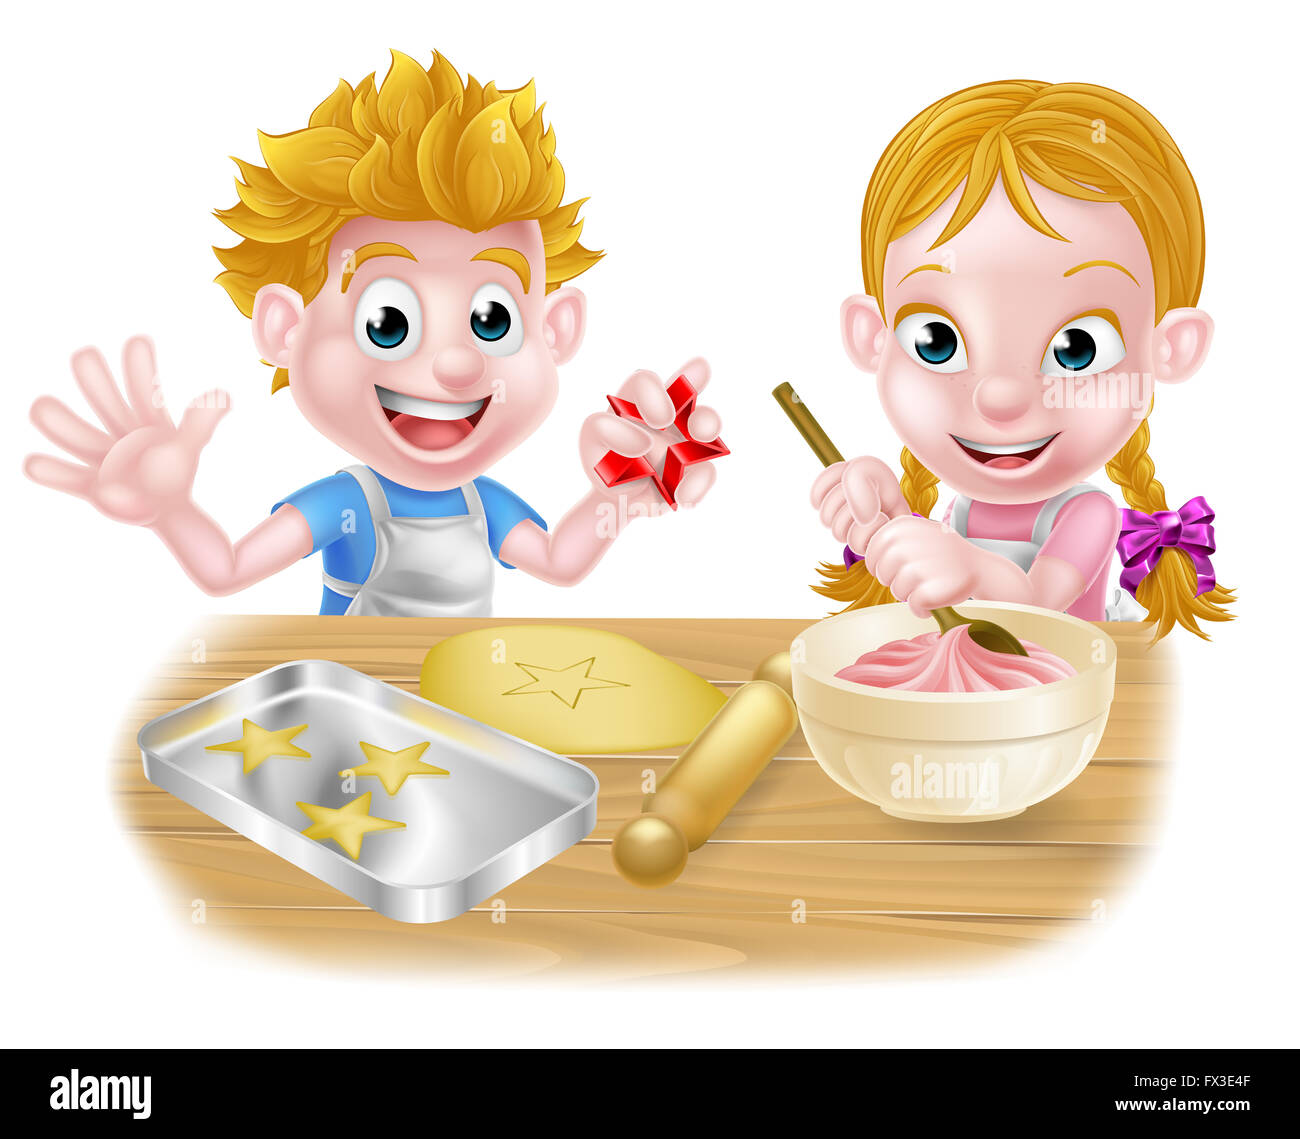 Bilder Cartoon Küche Cartoon Kinder Backen Und Kochen Als Köche In Der Küche